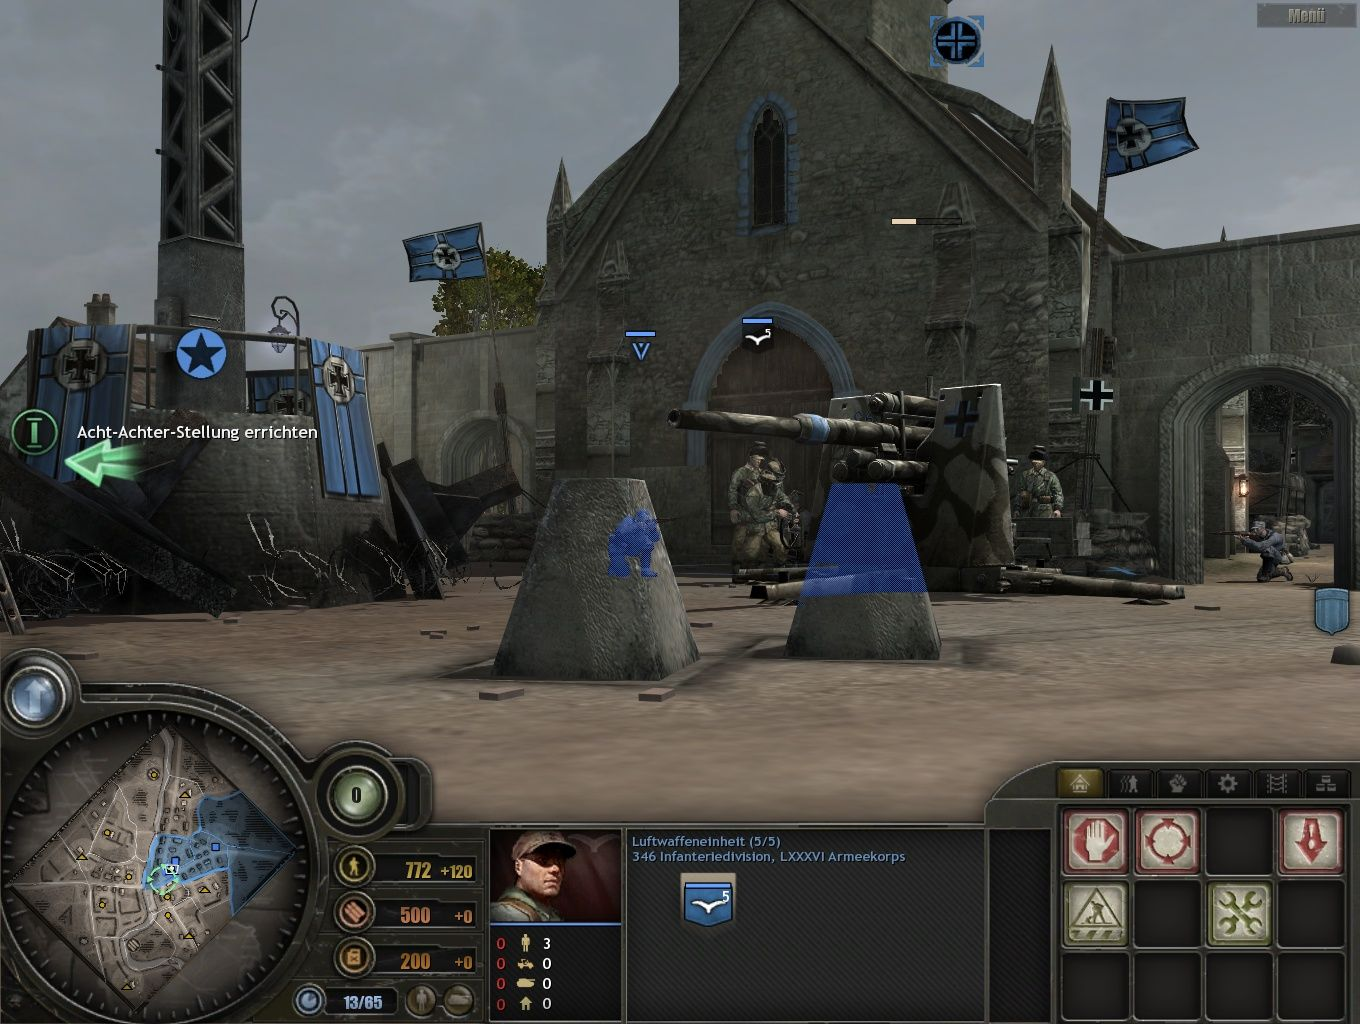 Company of Heroes: Tales of Valor Windows Placing a canon in front of the church to defend against tanks.